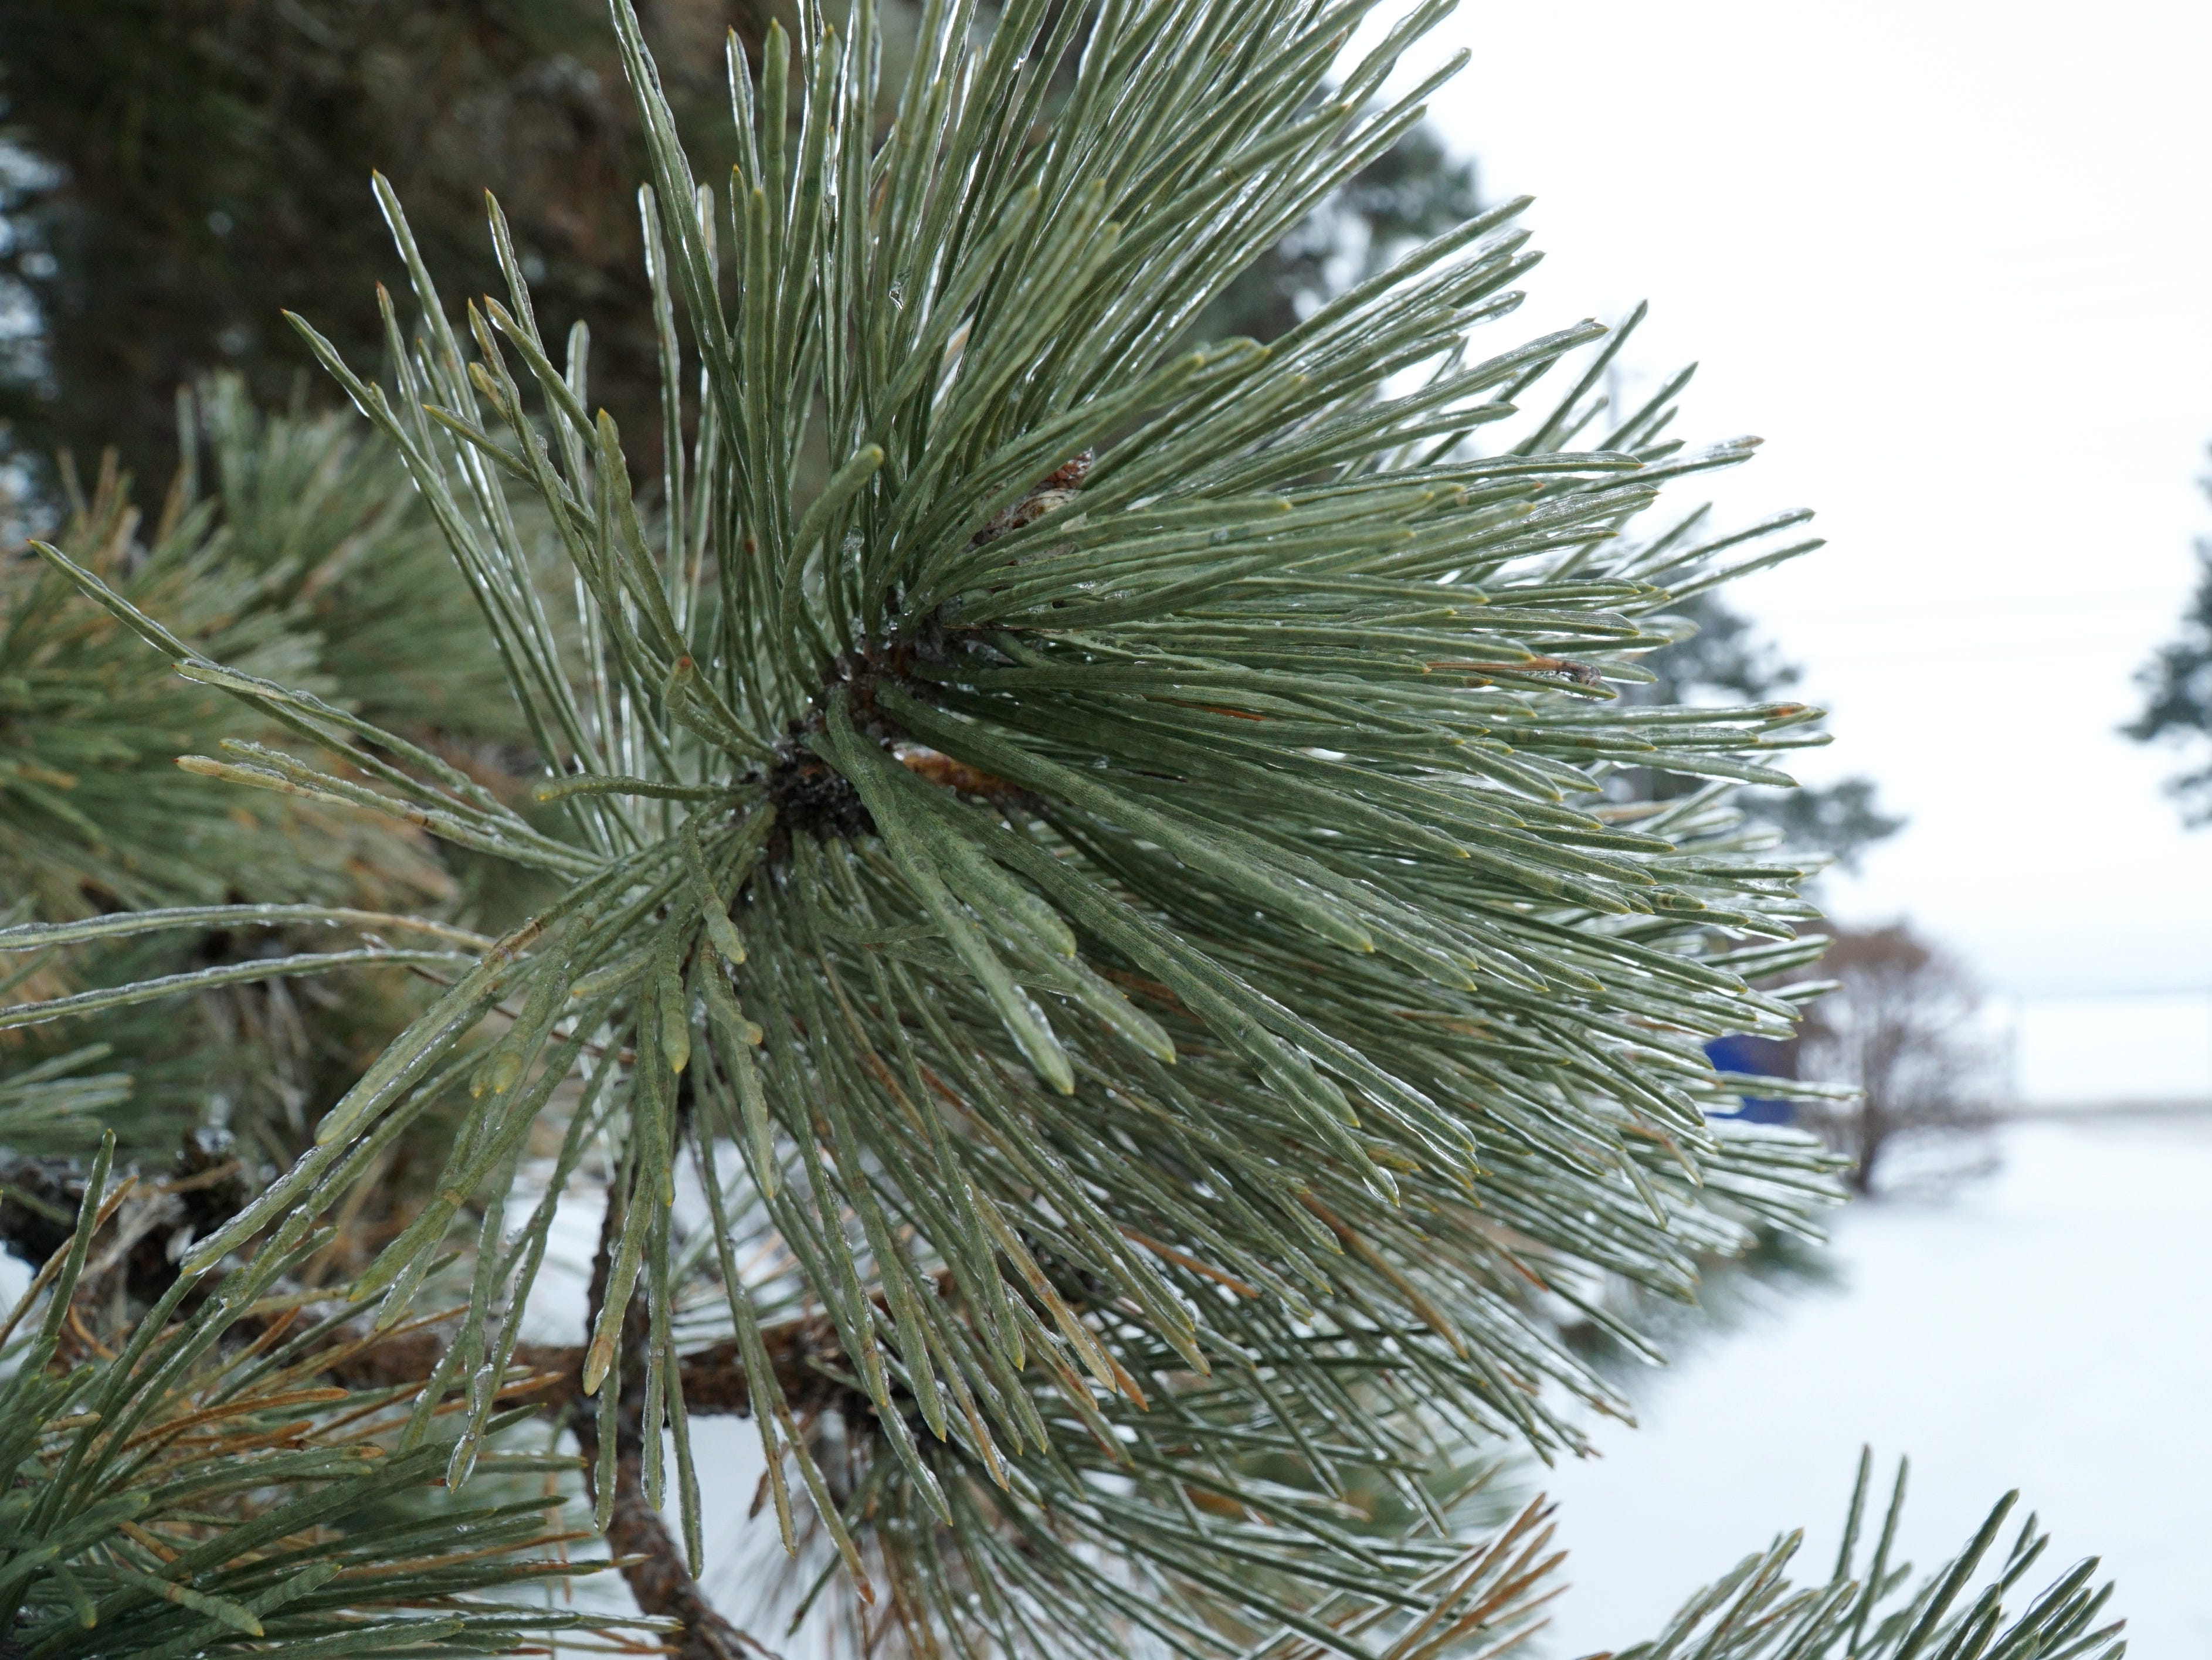 The rain and ice storm of Feb. 12 covered most trees in a layer of ice, including this Scotch Pine near Walled Lake.